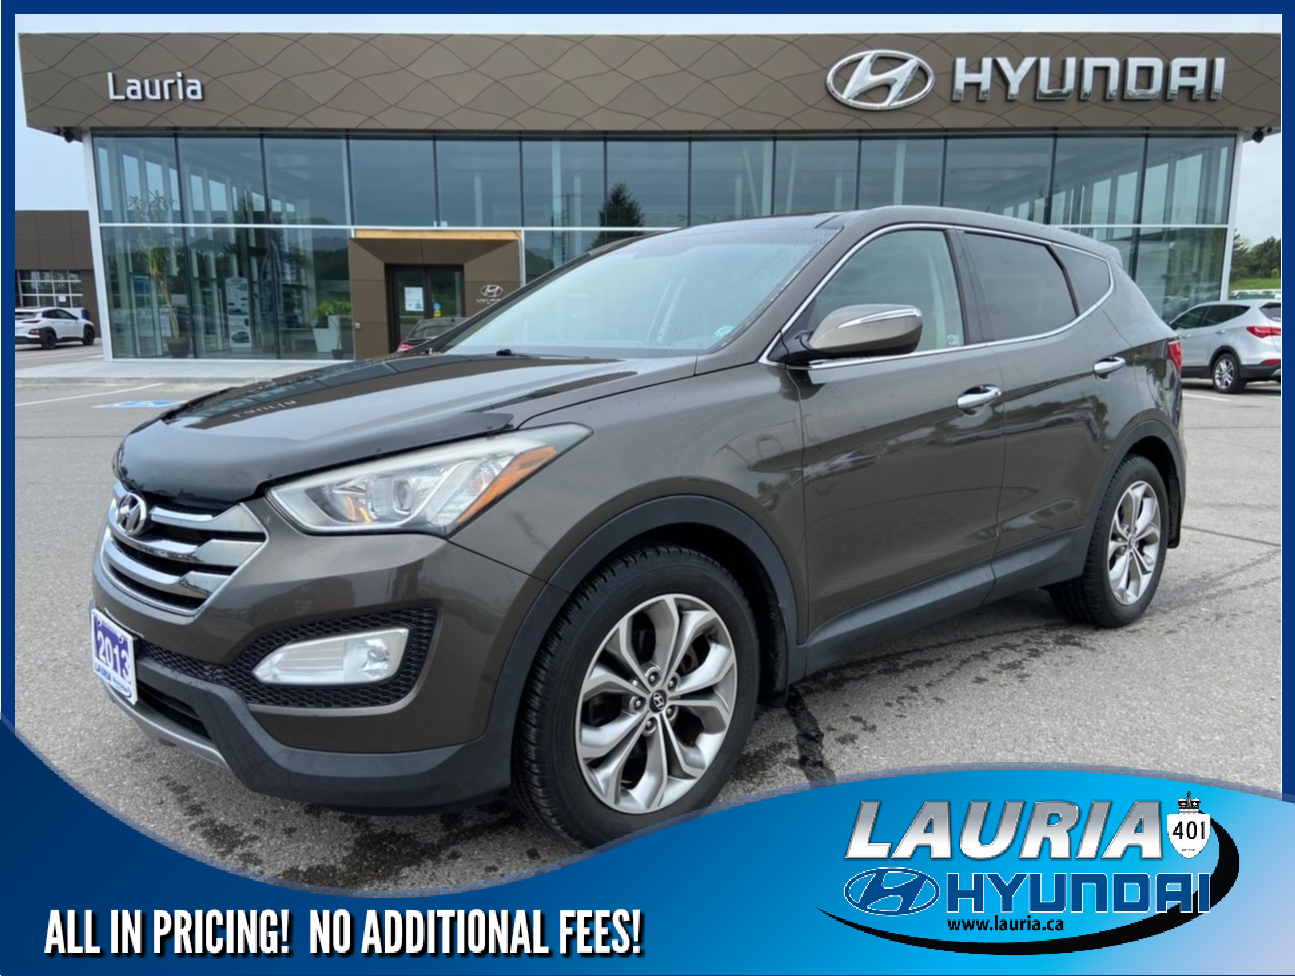 Pre-Owned 2013 Hyundai Santa Fe 2.0T AWD Limited - LOW KMS / LOADED